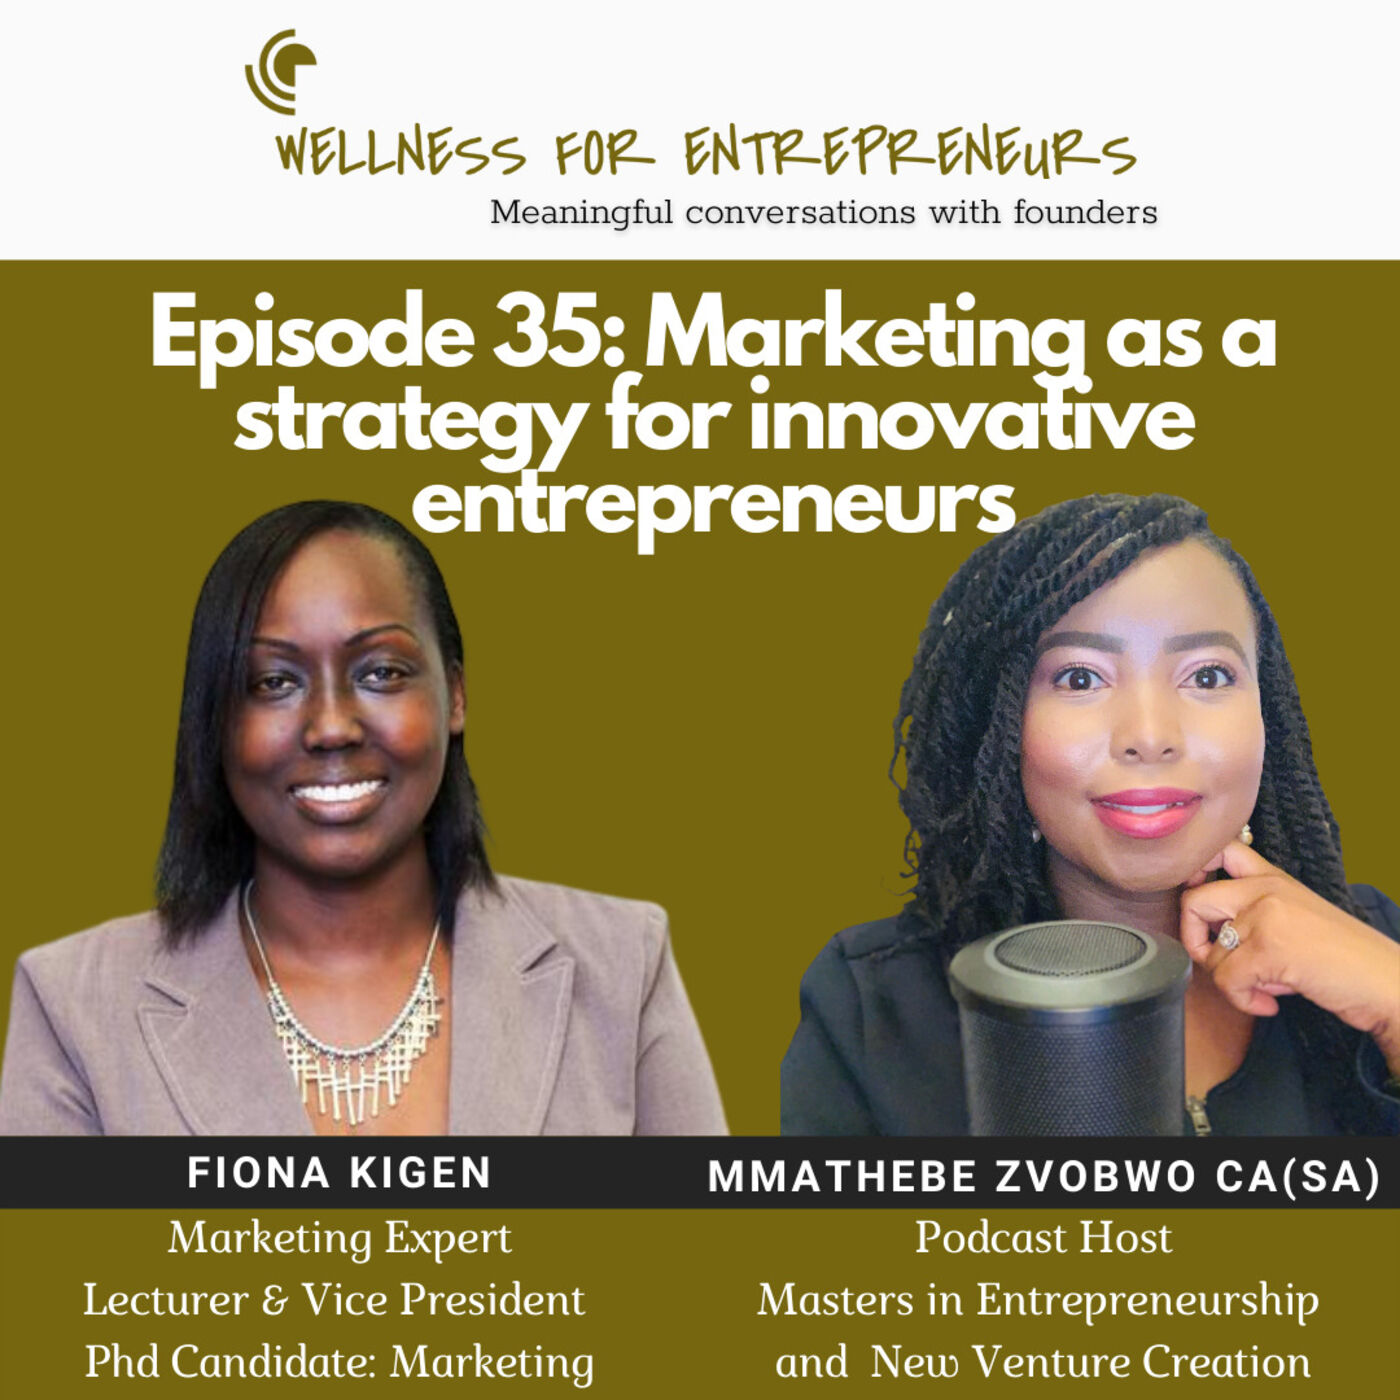 Episode 35: Marketing as a strategy for innovative entrepreneurs, with Fiona Kigen